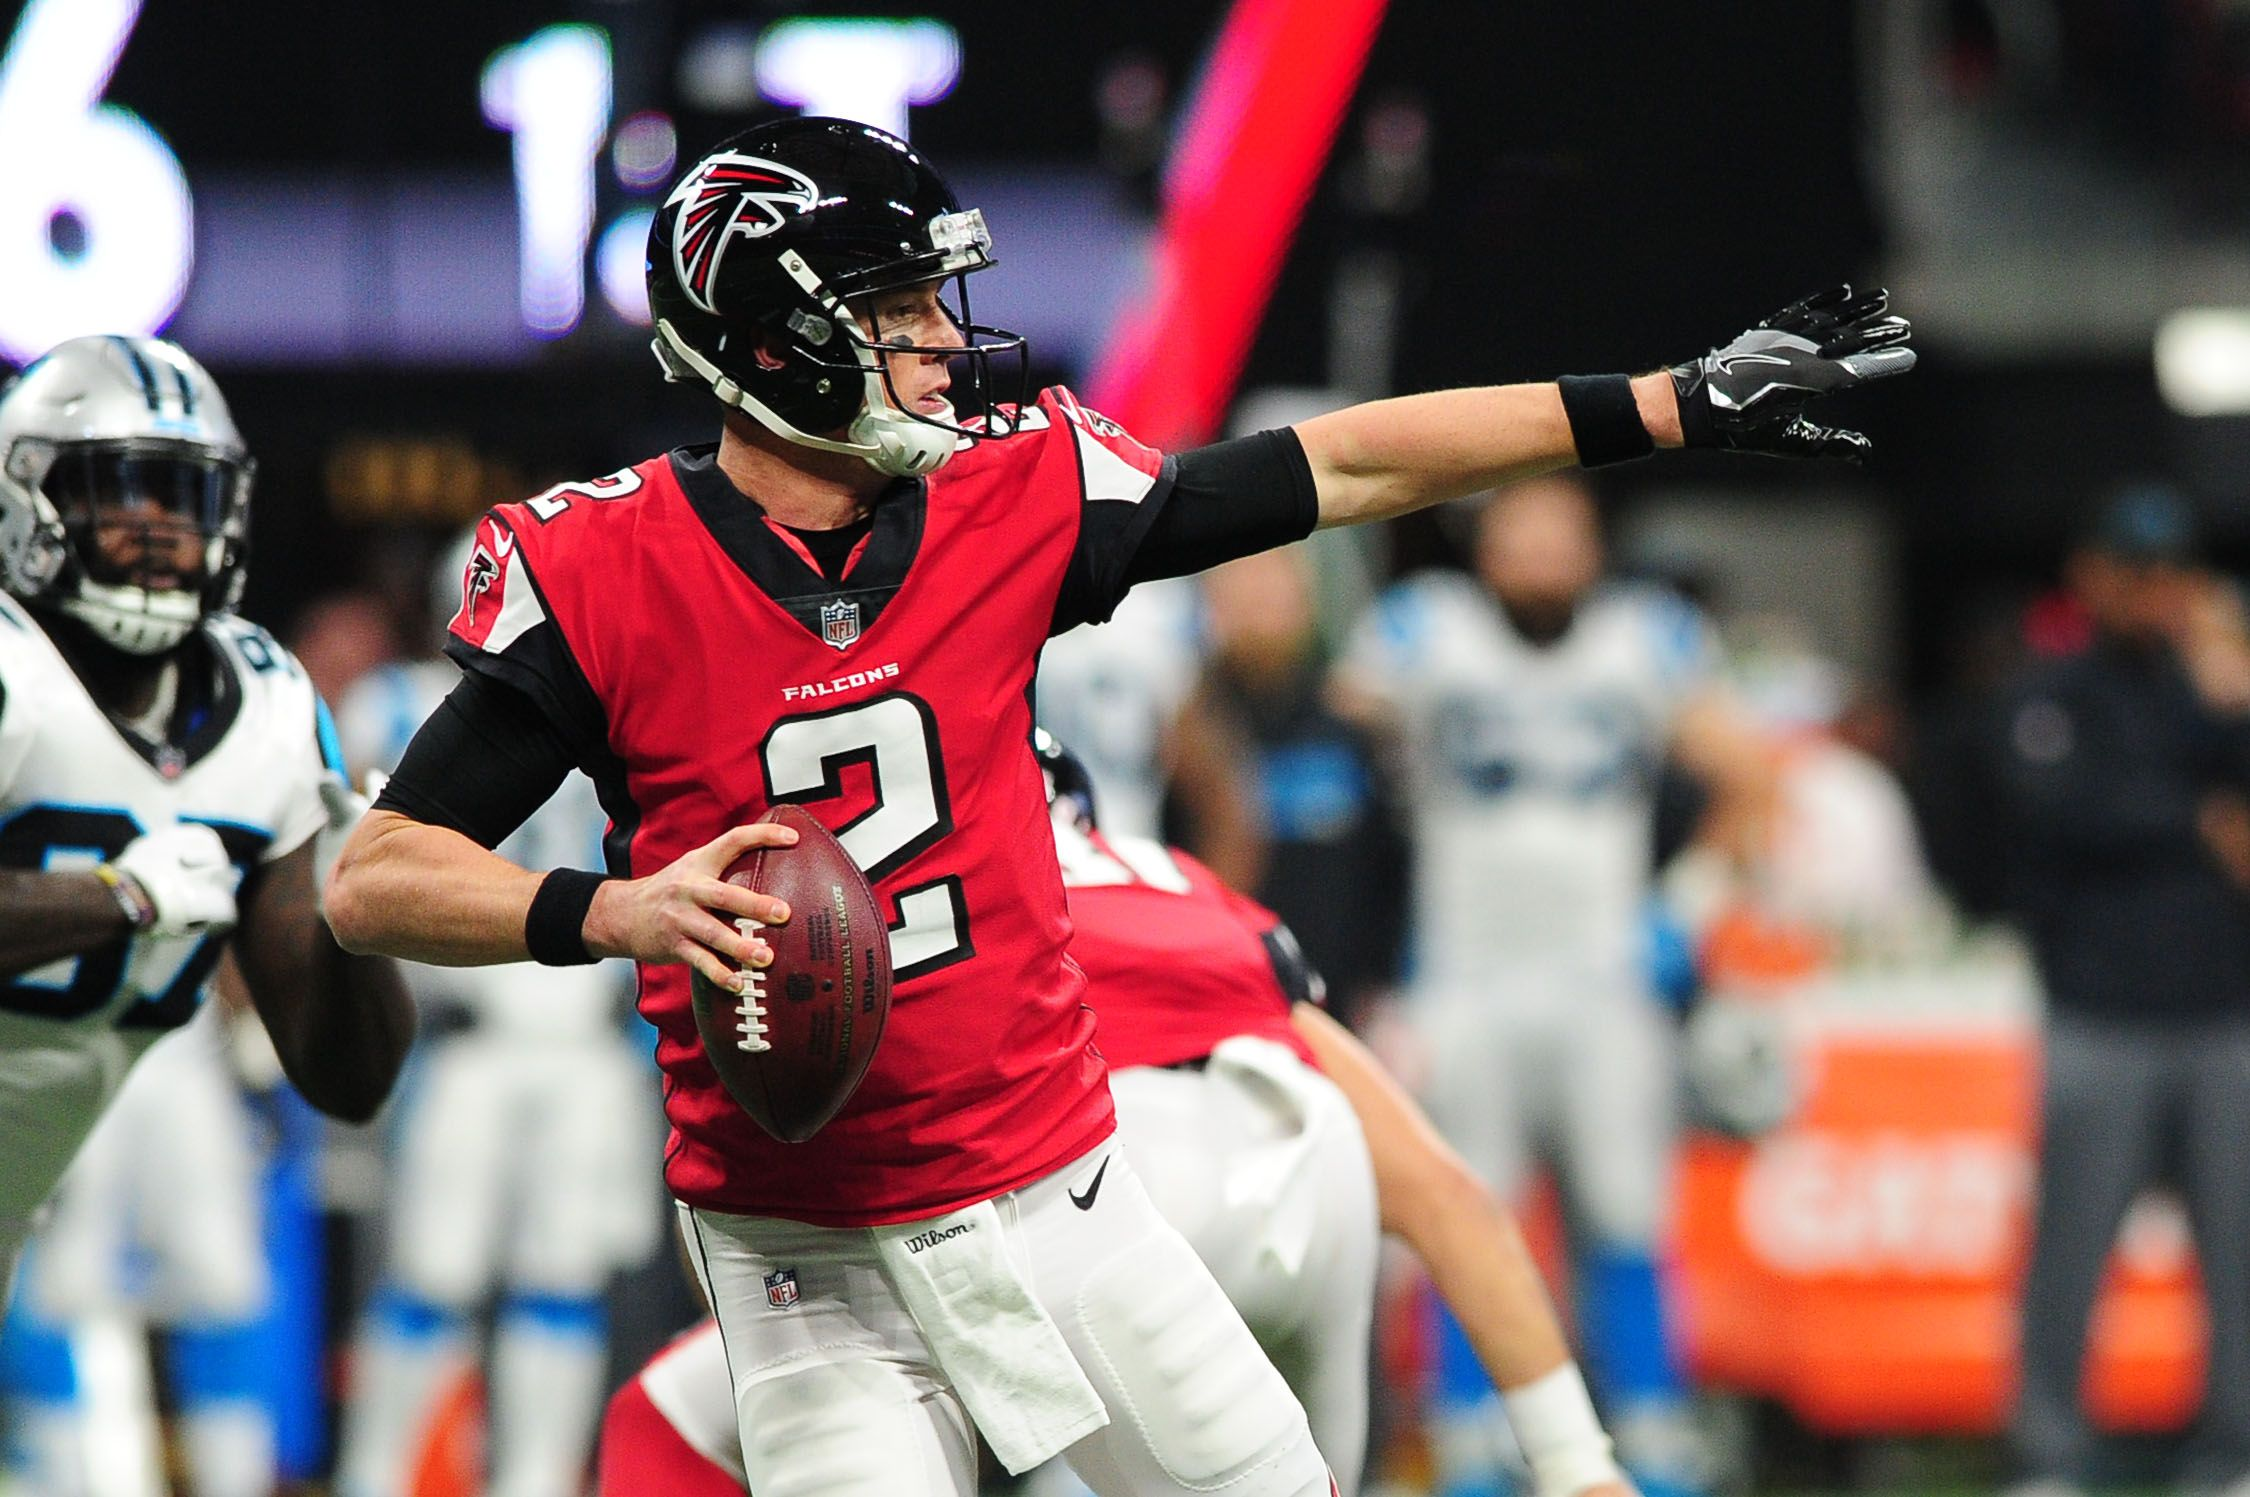 reputable site f5025 e1d98 What Time, TV Channel is the Atlanta Falcons vs. Carolina ...